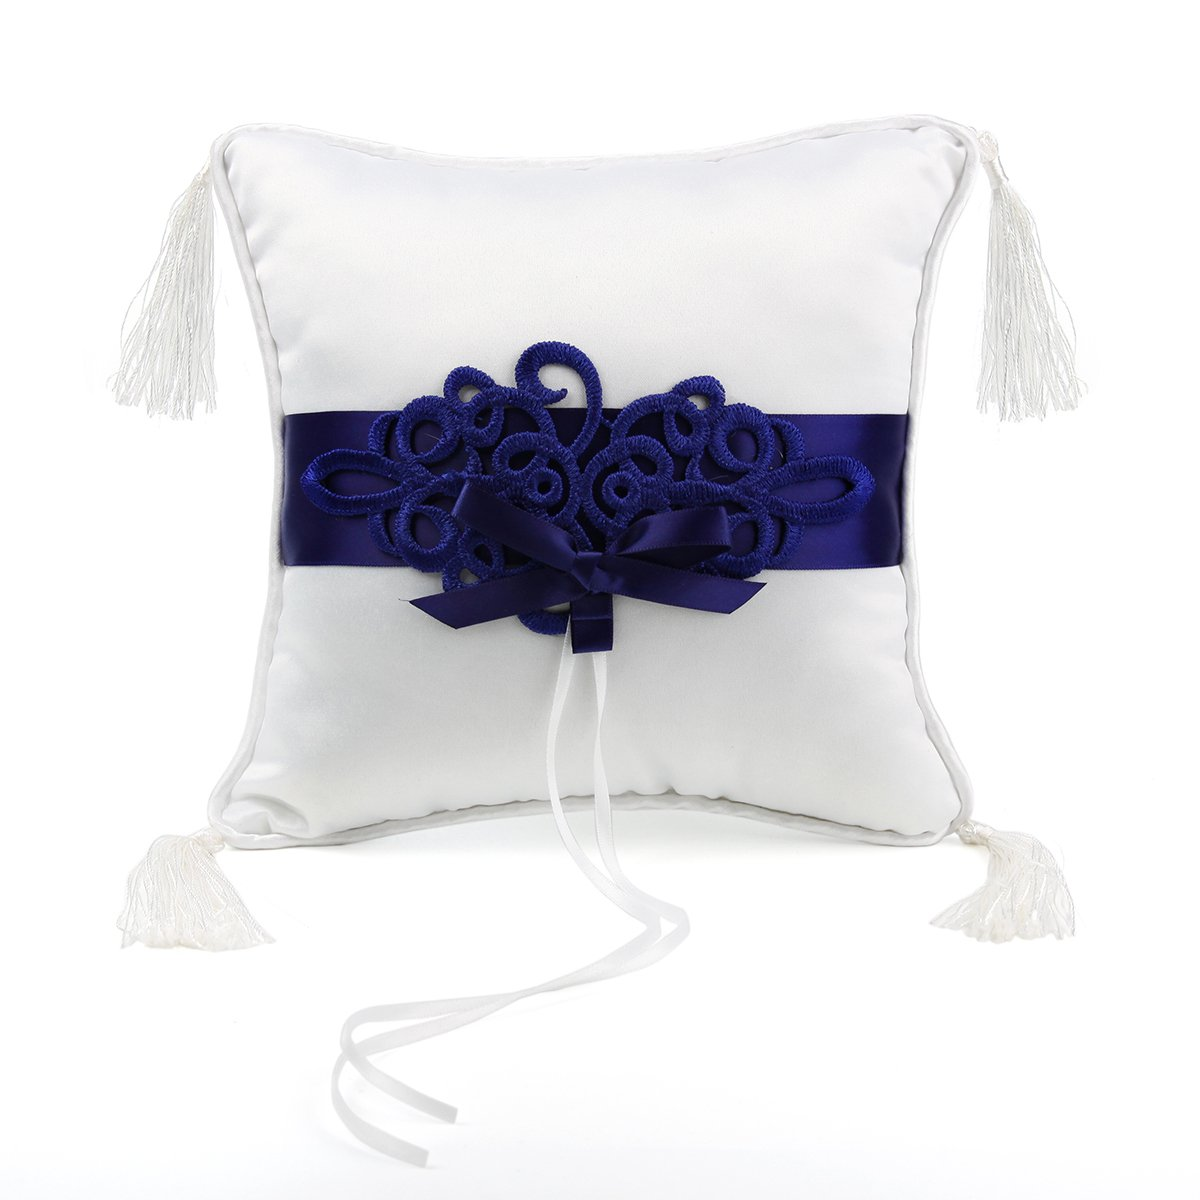 KateMelon Navy Blue Embroidery Wedding Ring Pillow 7.8 Inch x 7.8 Inch by KateMelon